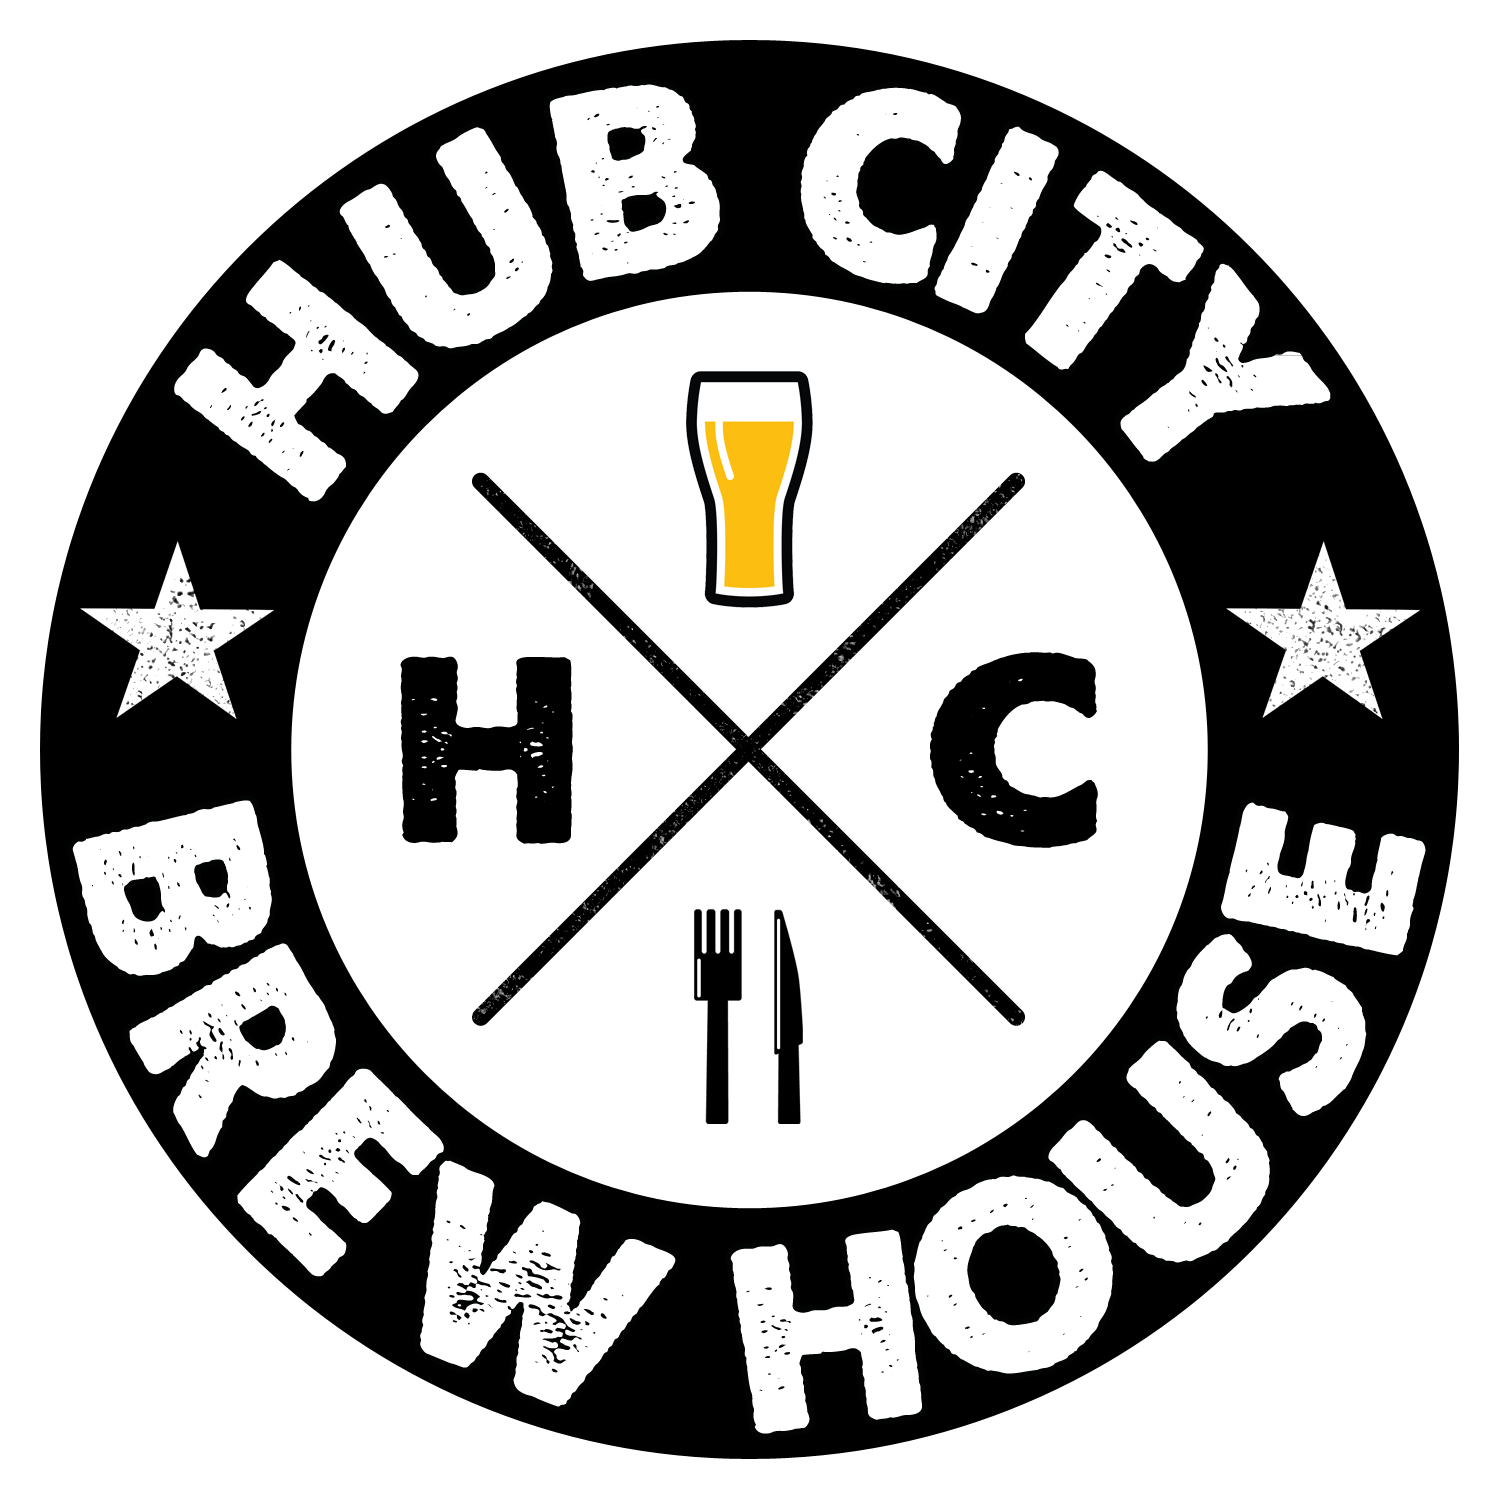 World of Beer aka Hub City Brewhouse